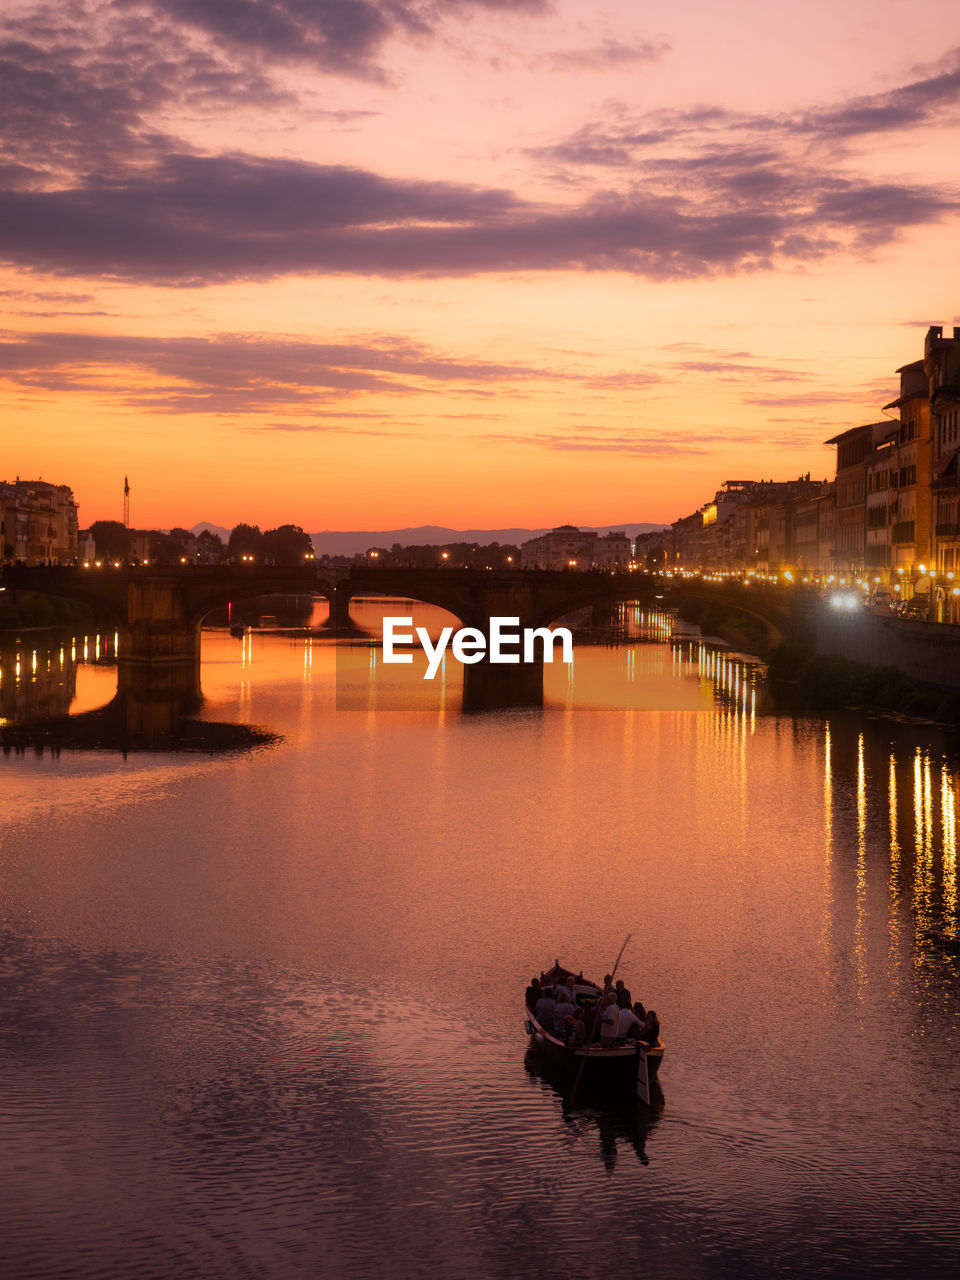 sunset, sky, water, transportation, nautical vessel, architecture, cloud - sky, mode of transportation, orange color, nature, waterfront, built structure, building exterior, reflection, river, city, beauty in nature, dusk, illuminated, outdoors